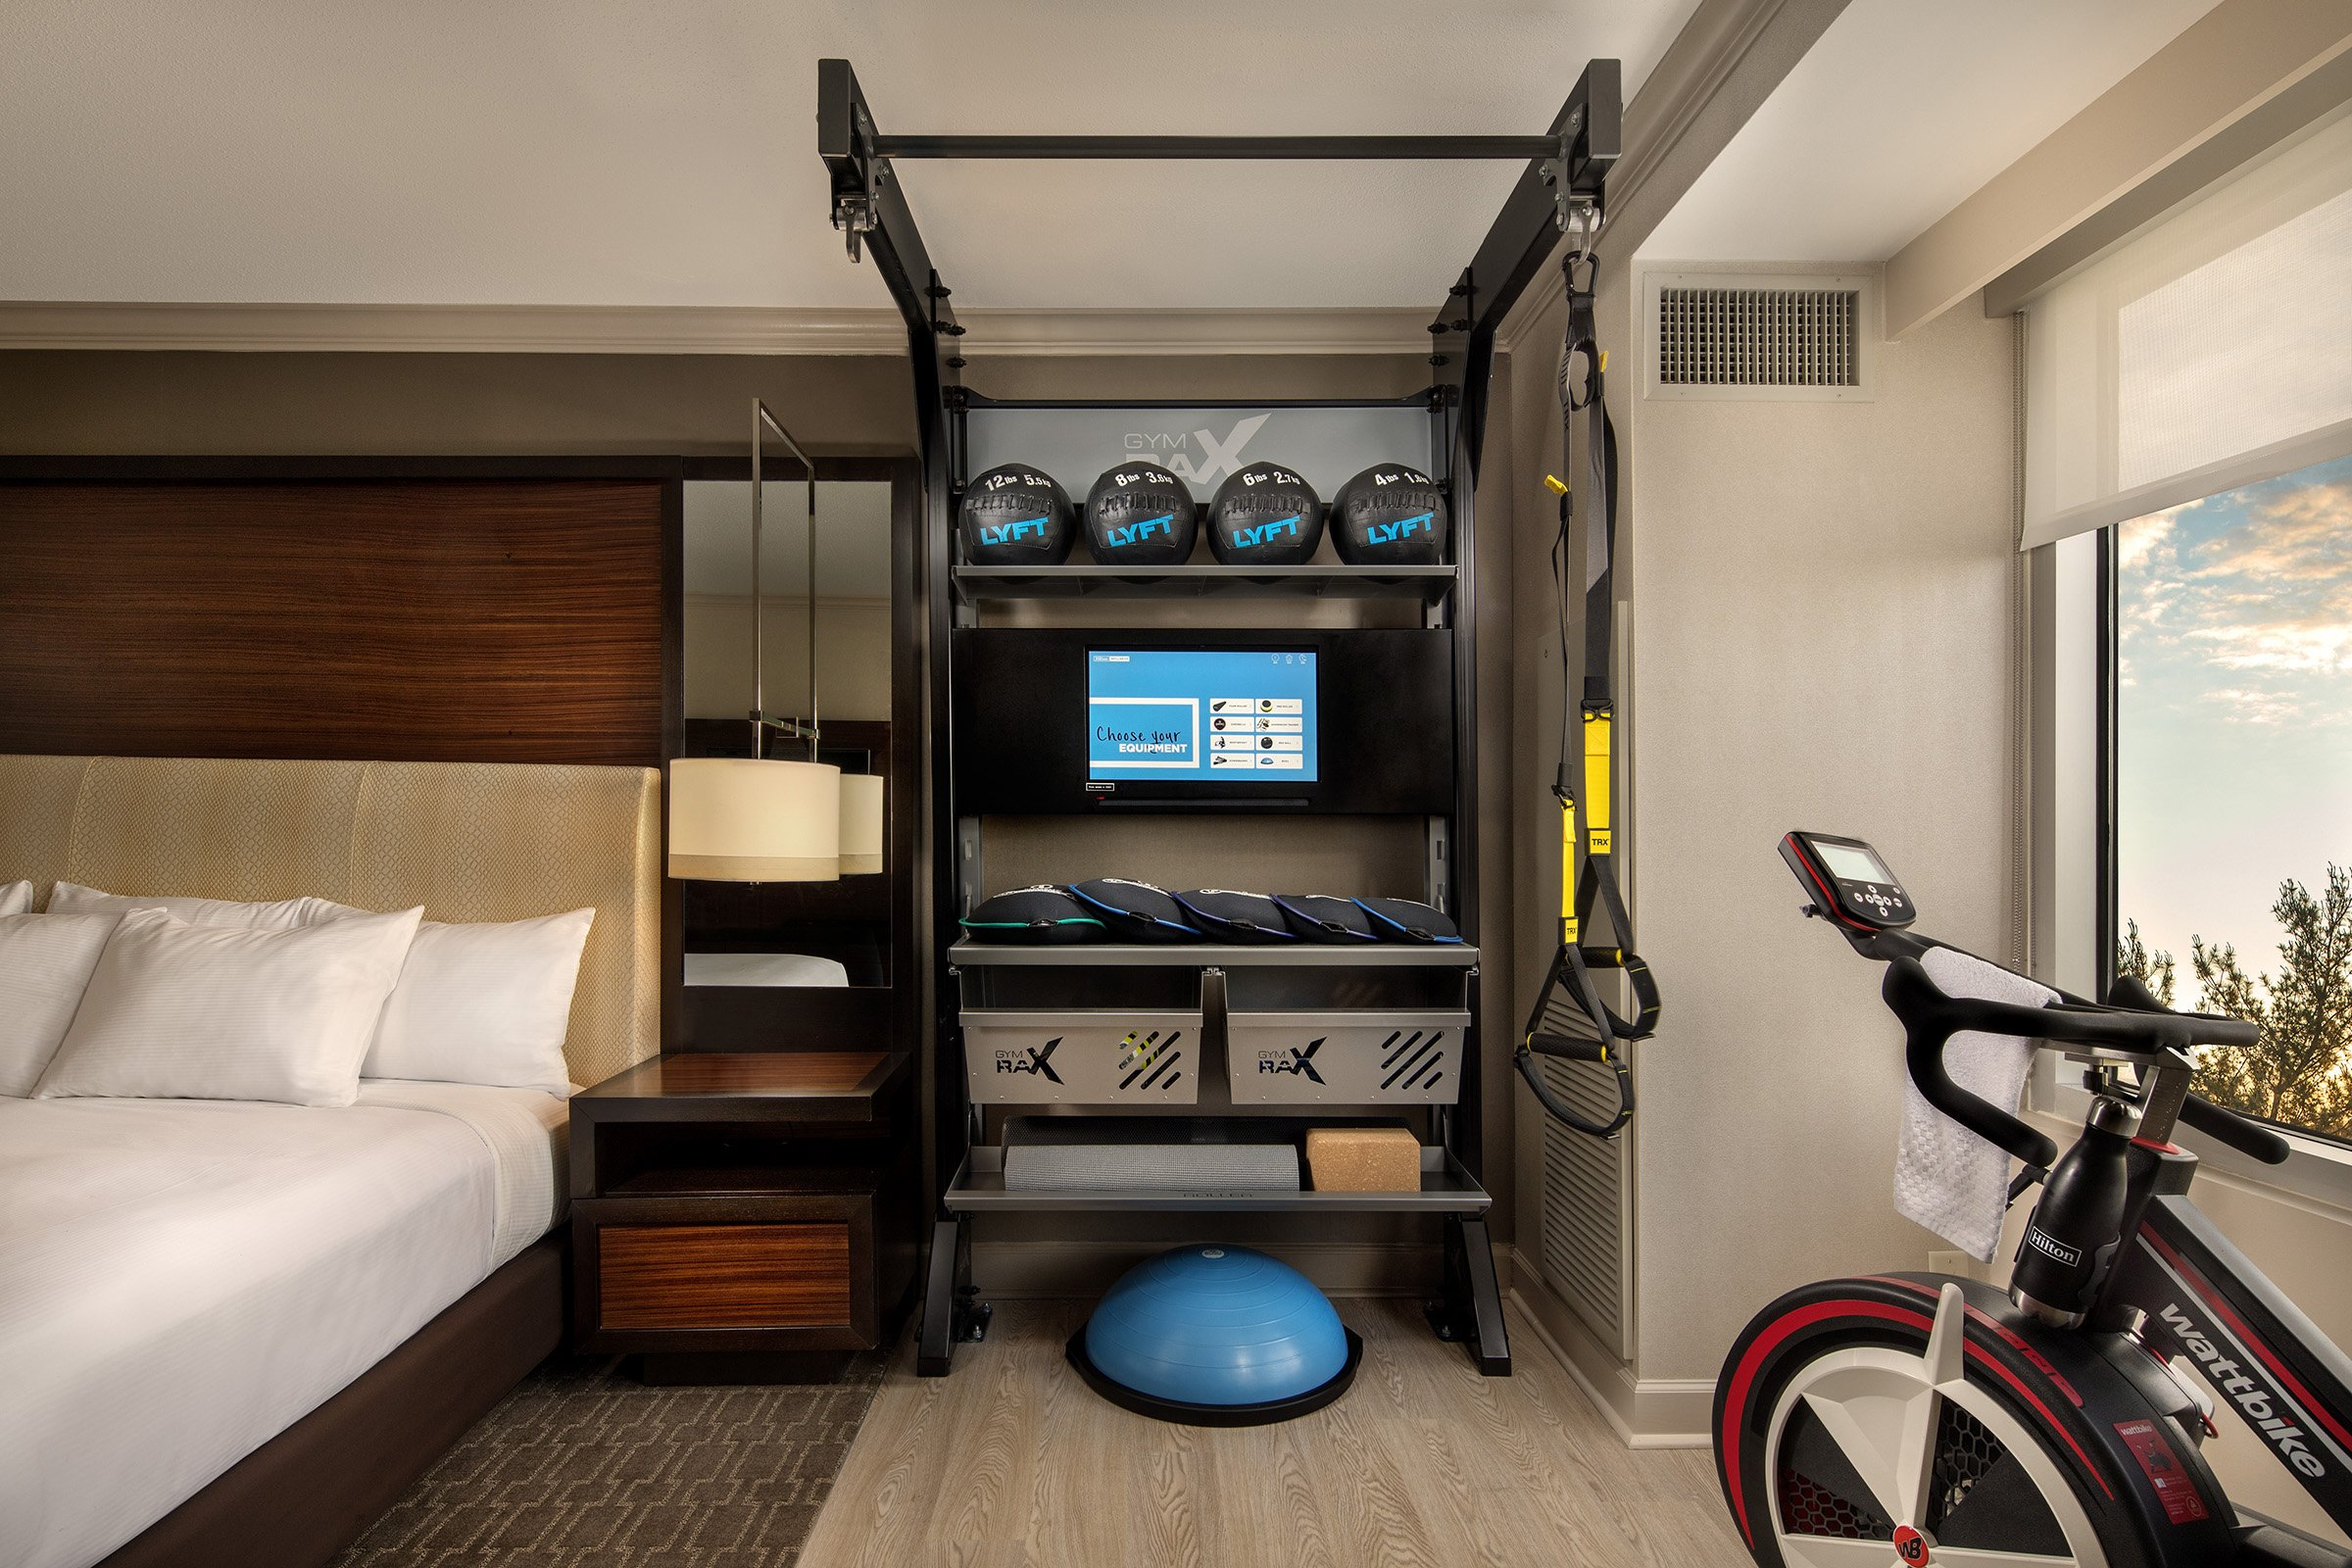 In Hilton\'s New Fitness-Friendly Rooms, You Can Literally Roll Out ...